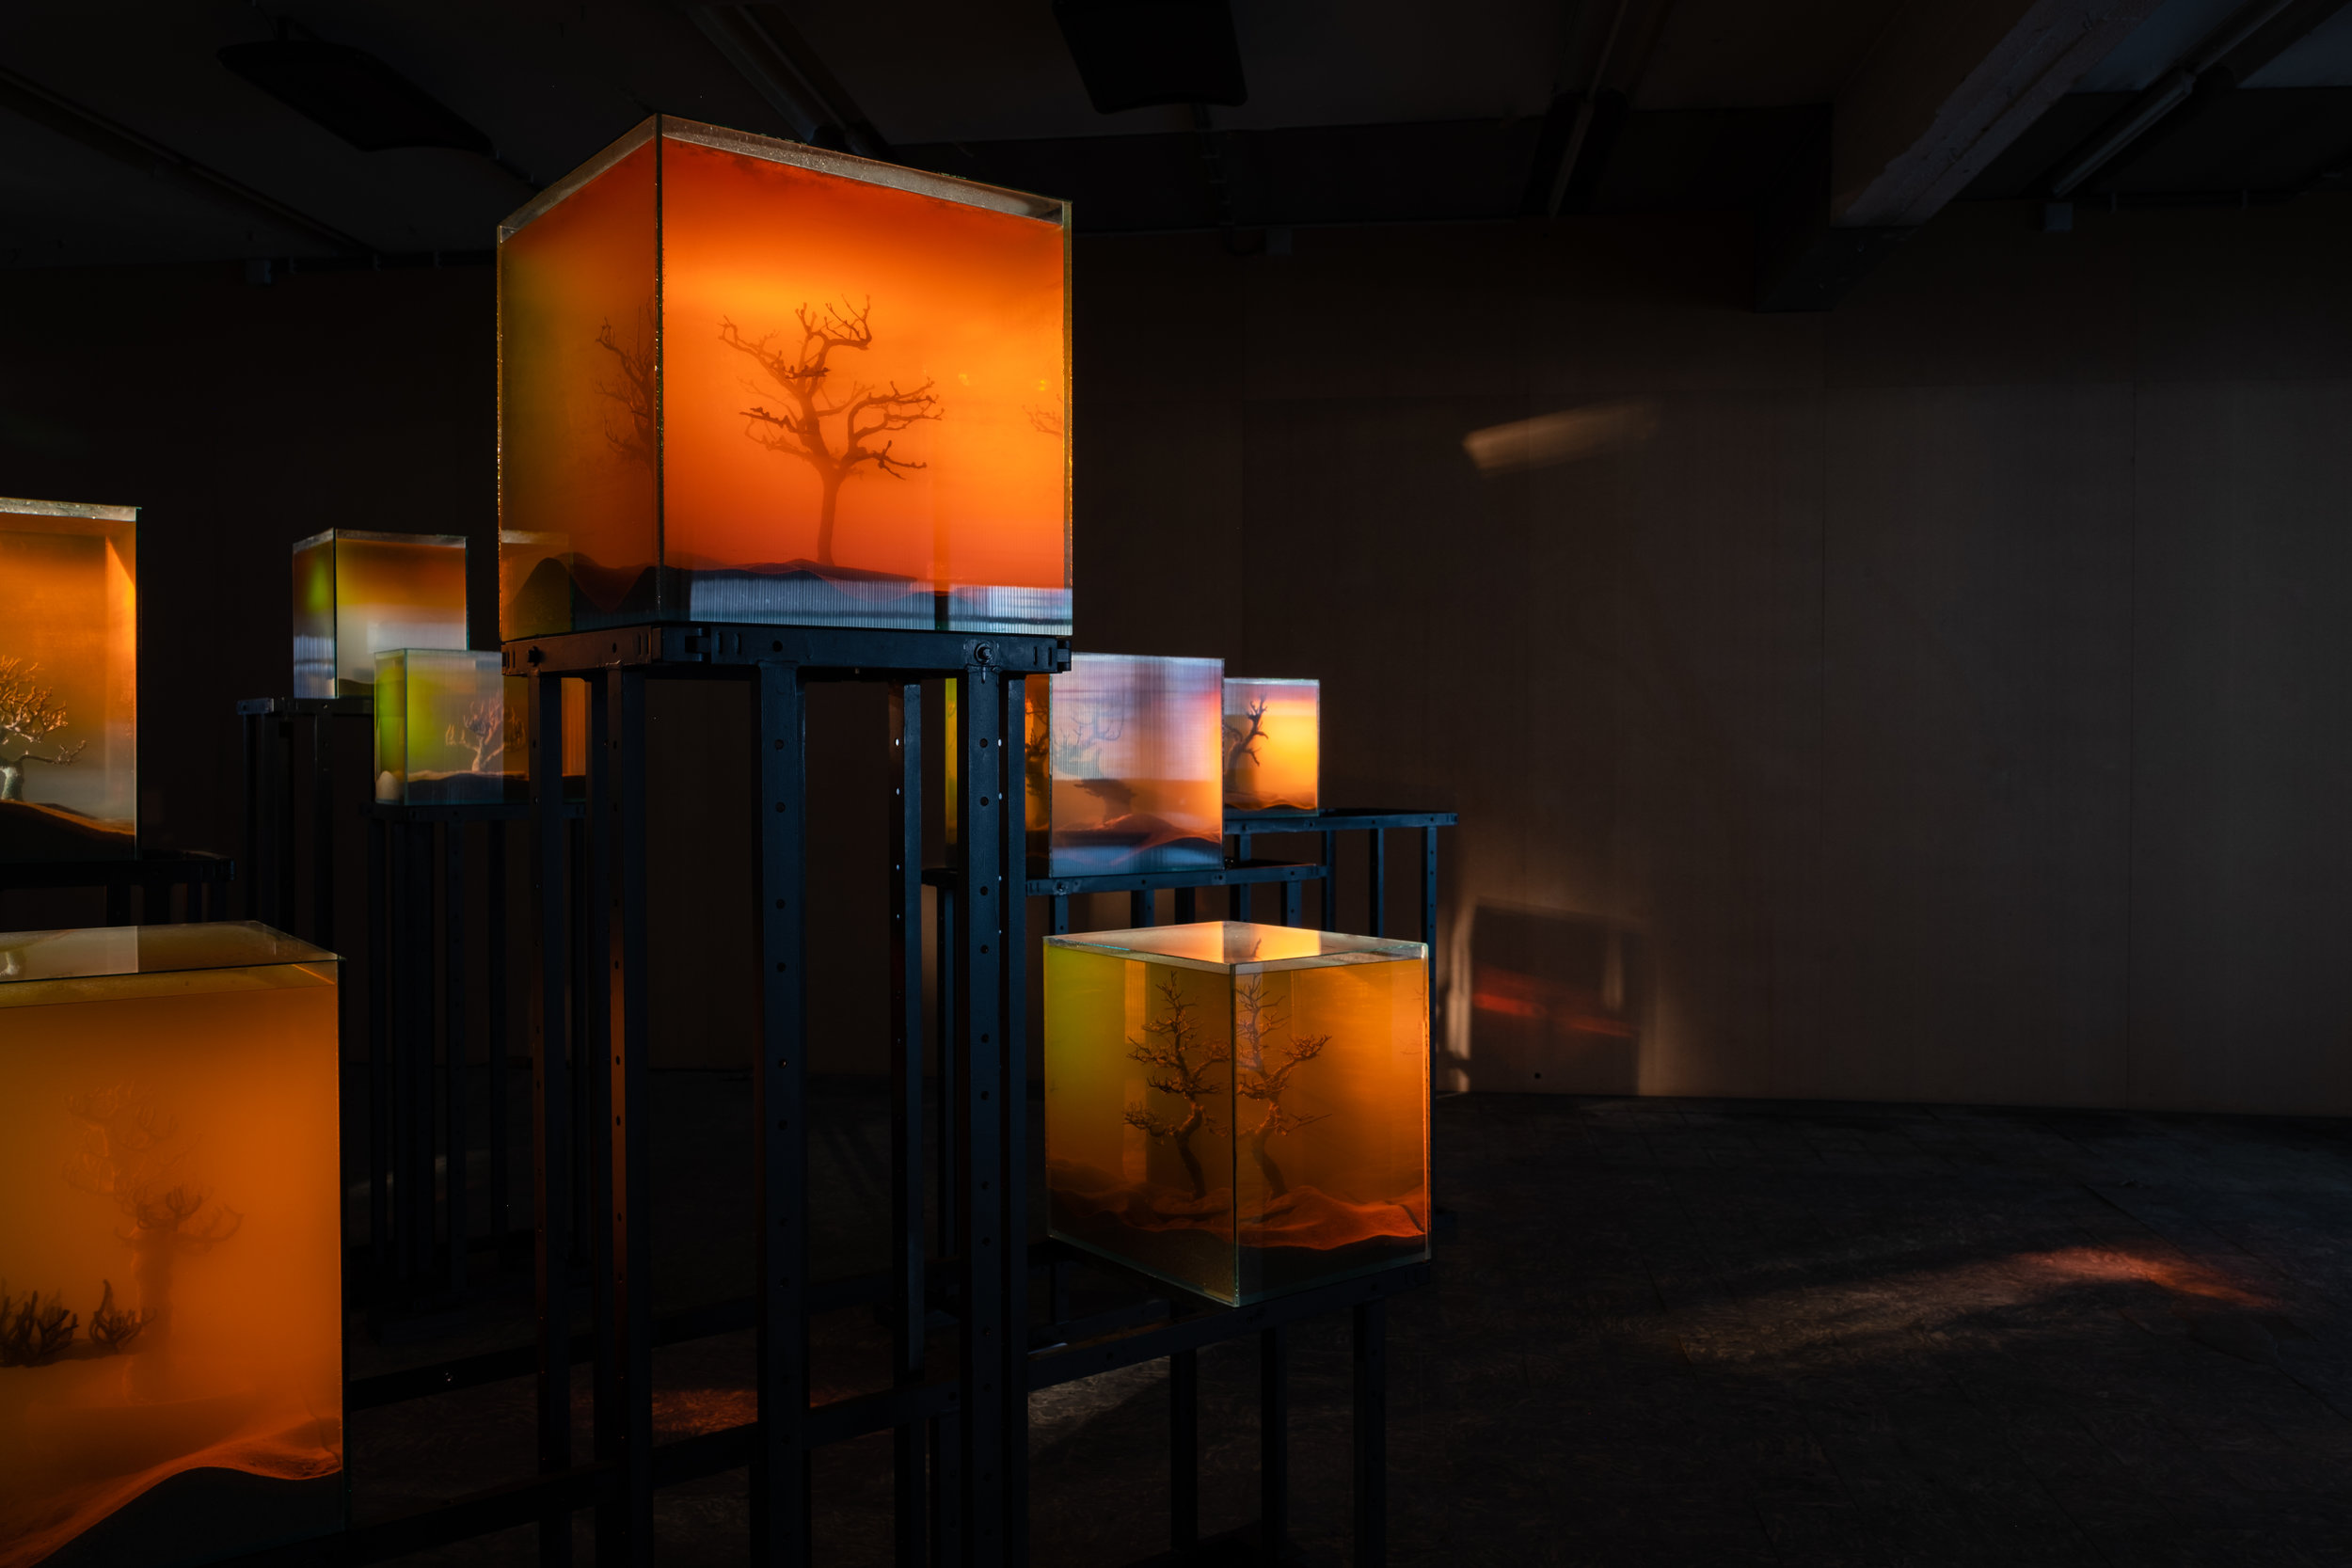 Various Artists, 'toxiThropea.sunset' (2019), in 'Deadly Affairs' (23.03-30.06.2019), Kunsthal Extra City, Antwerp, photo by Tomas Uyttendaele_12.jpg